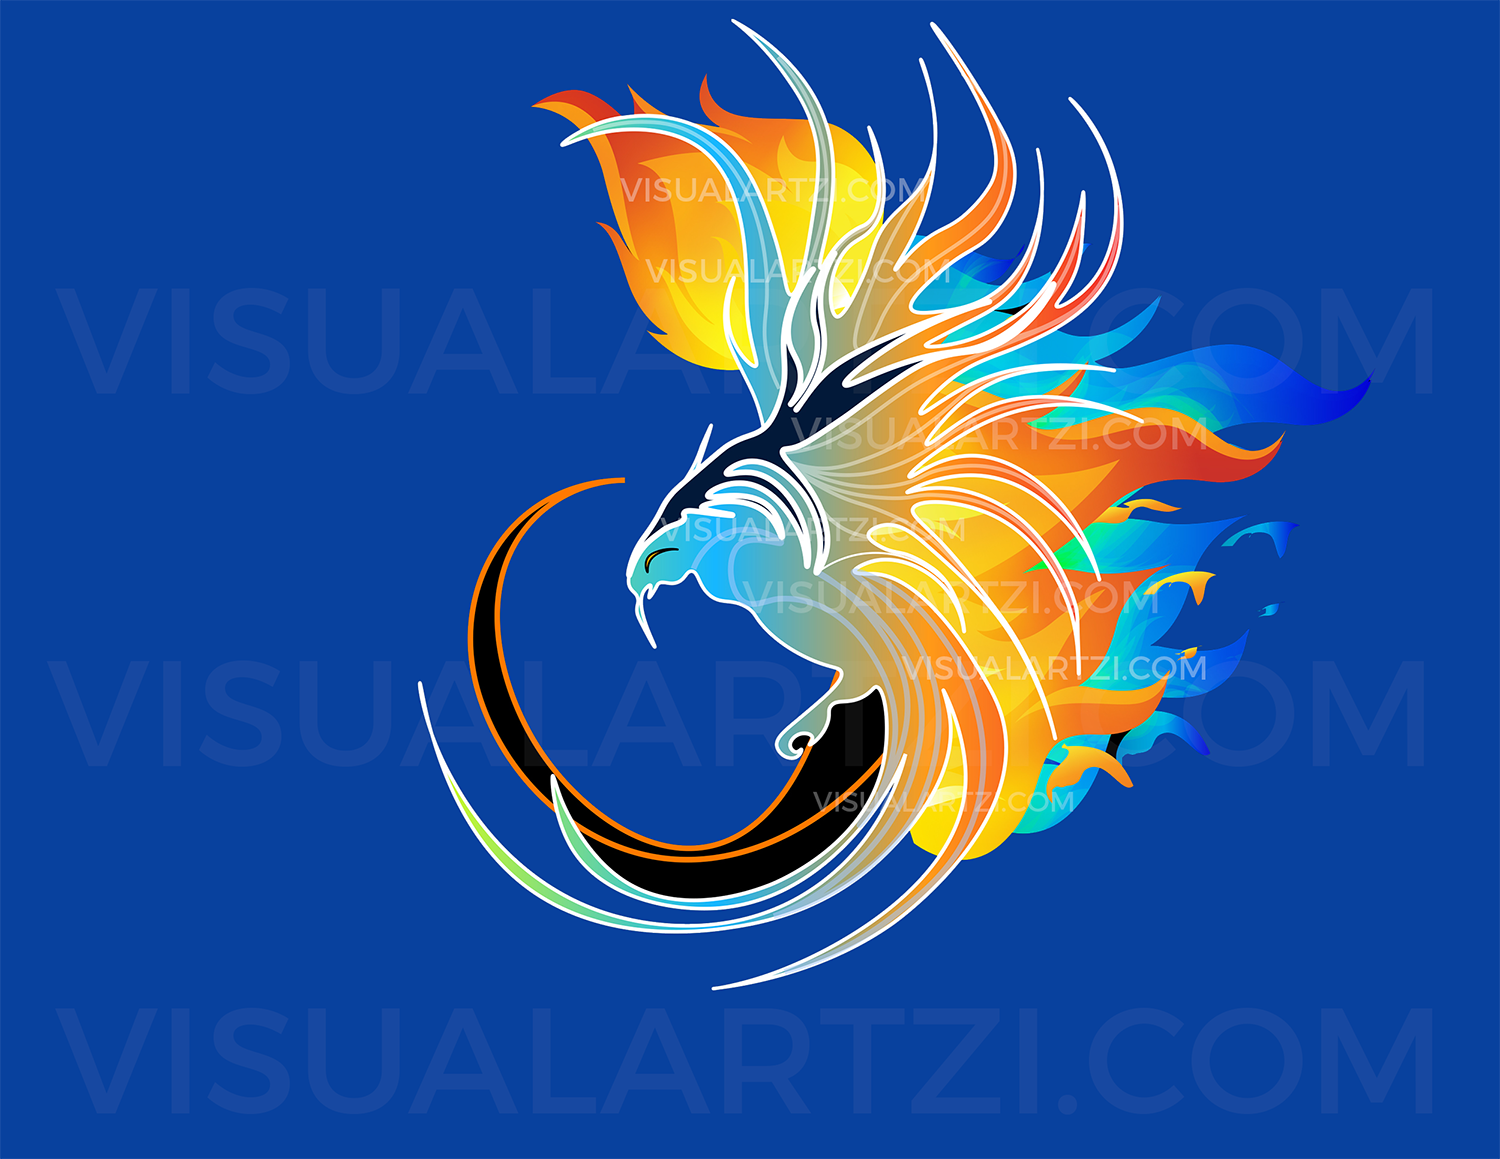 Visualartzi Get Personal | Flaming Phoenix illustration